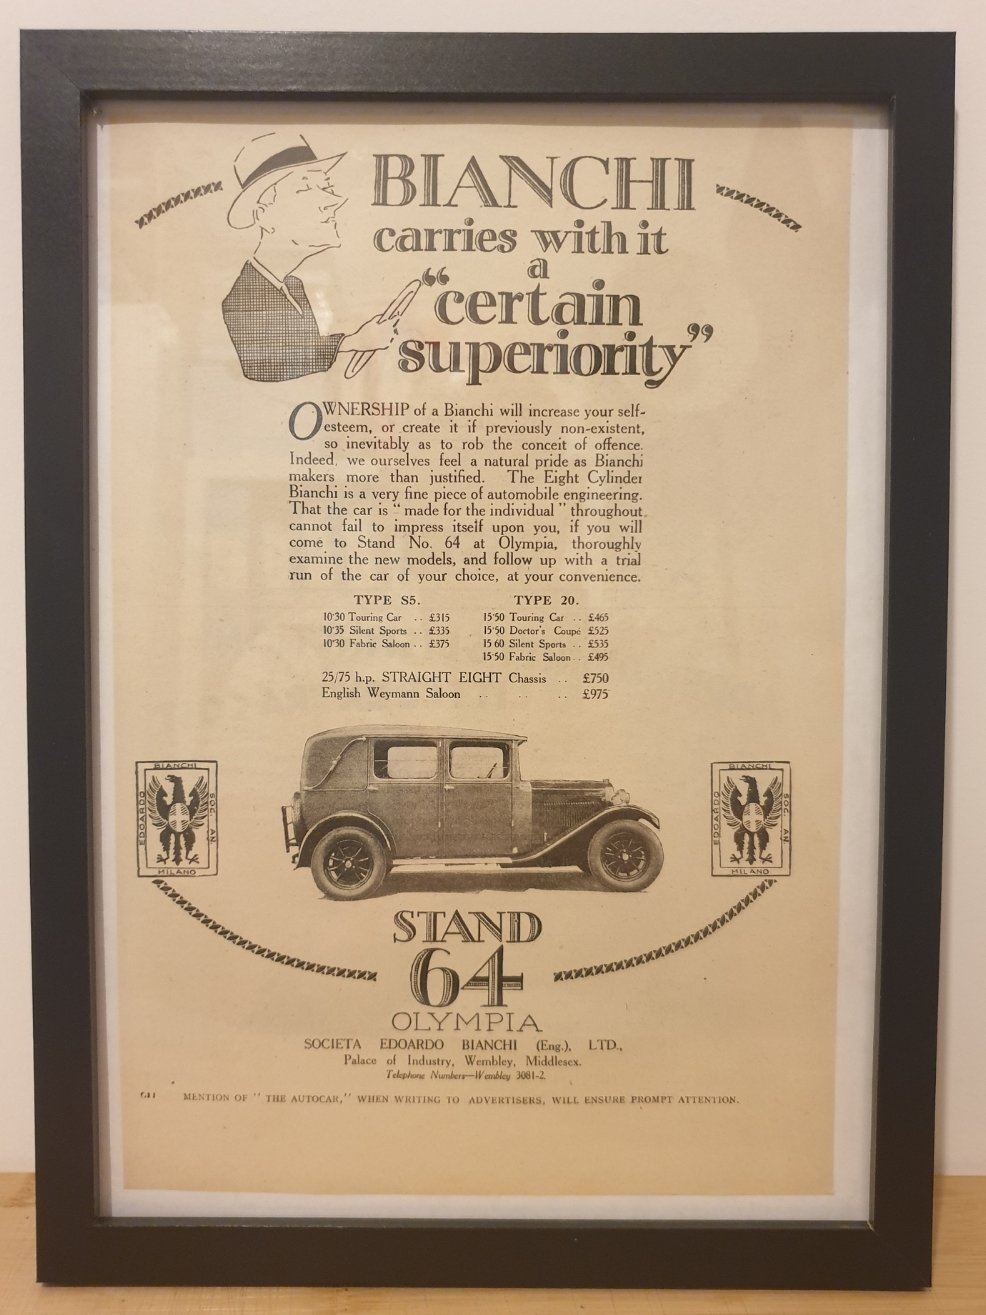 1963 Original 1928 Bianchi Framed Advert  For Sale (picture 1 of 3)